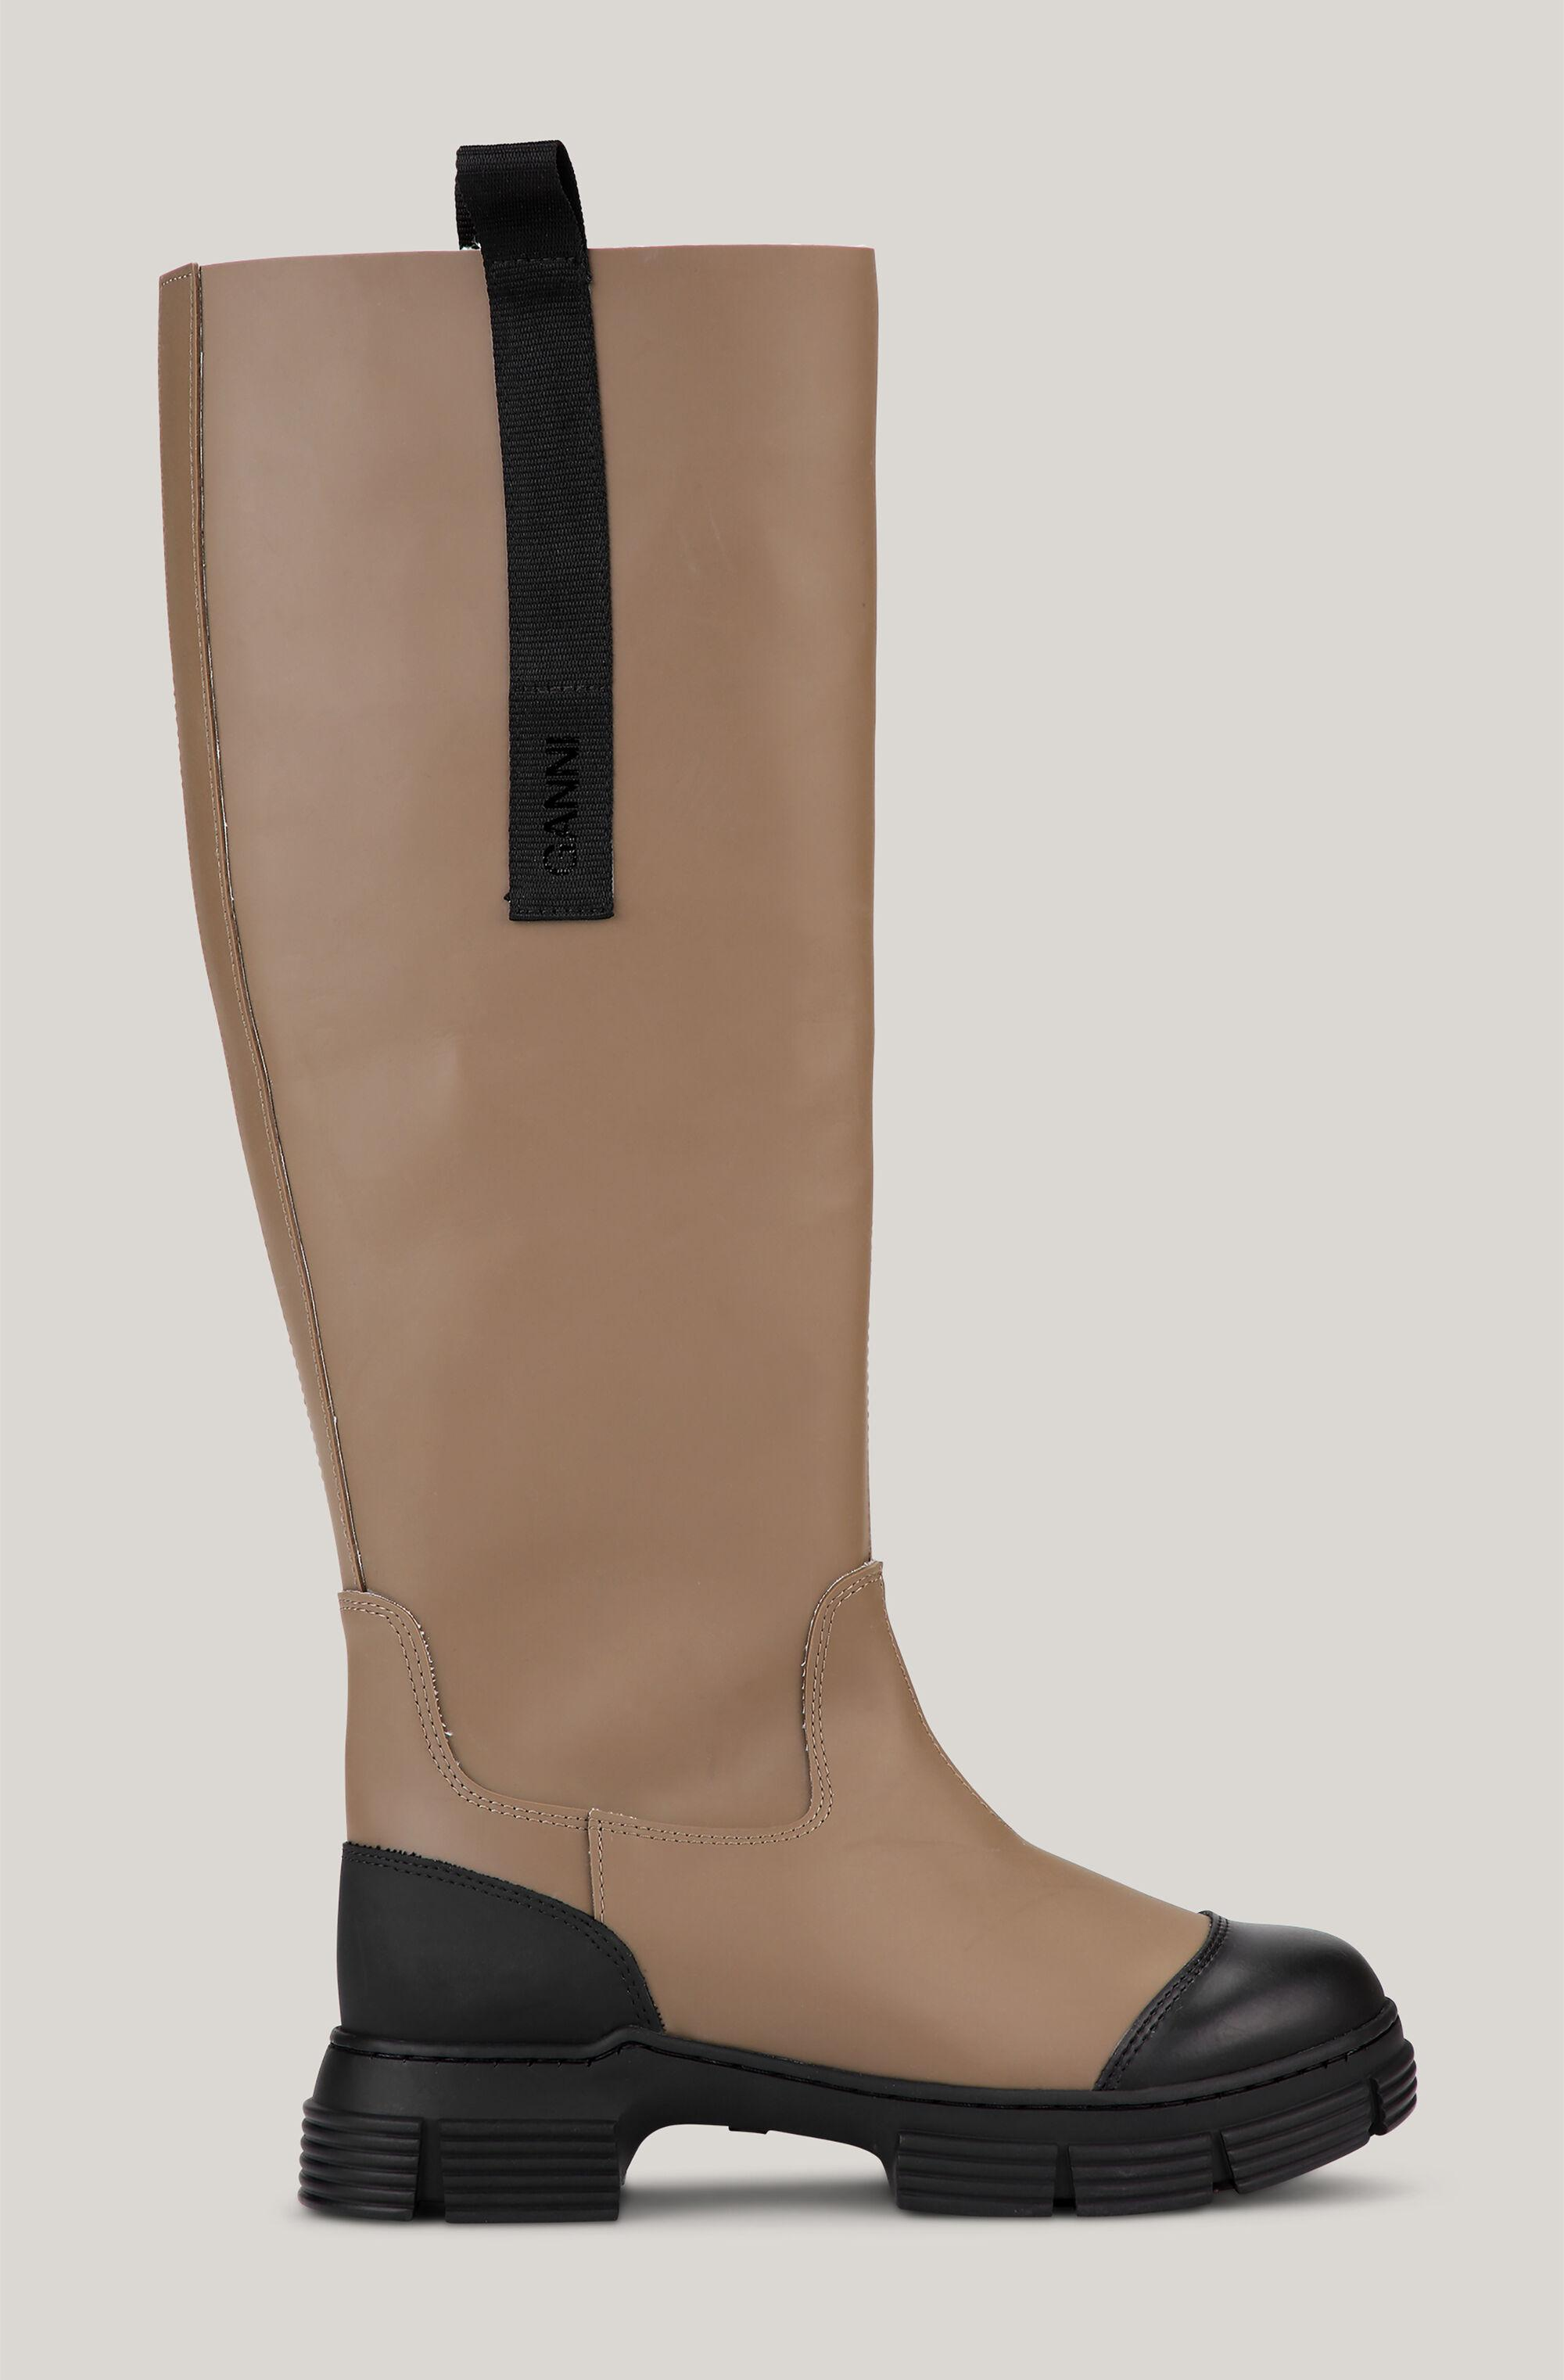 Recycled Rubber Knee-High Country Boots